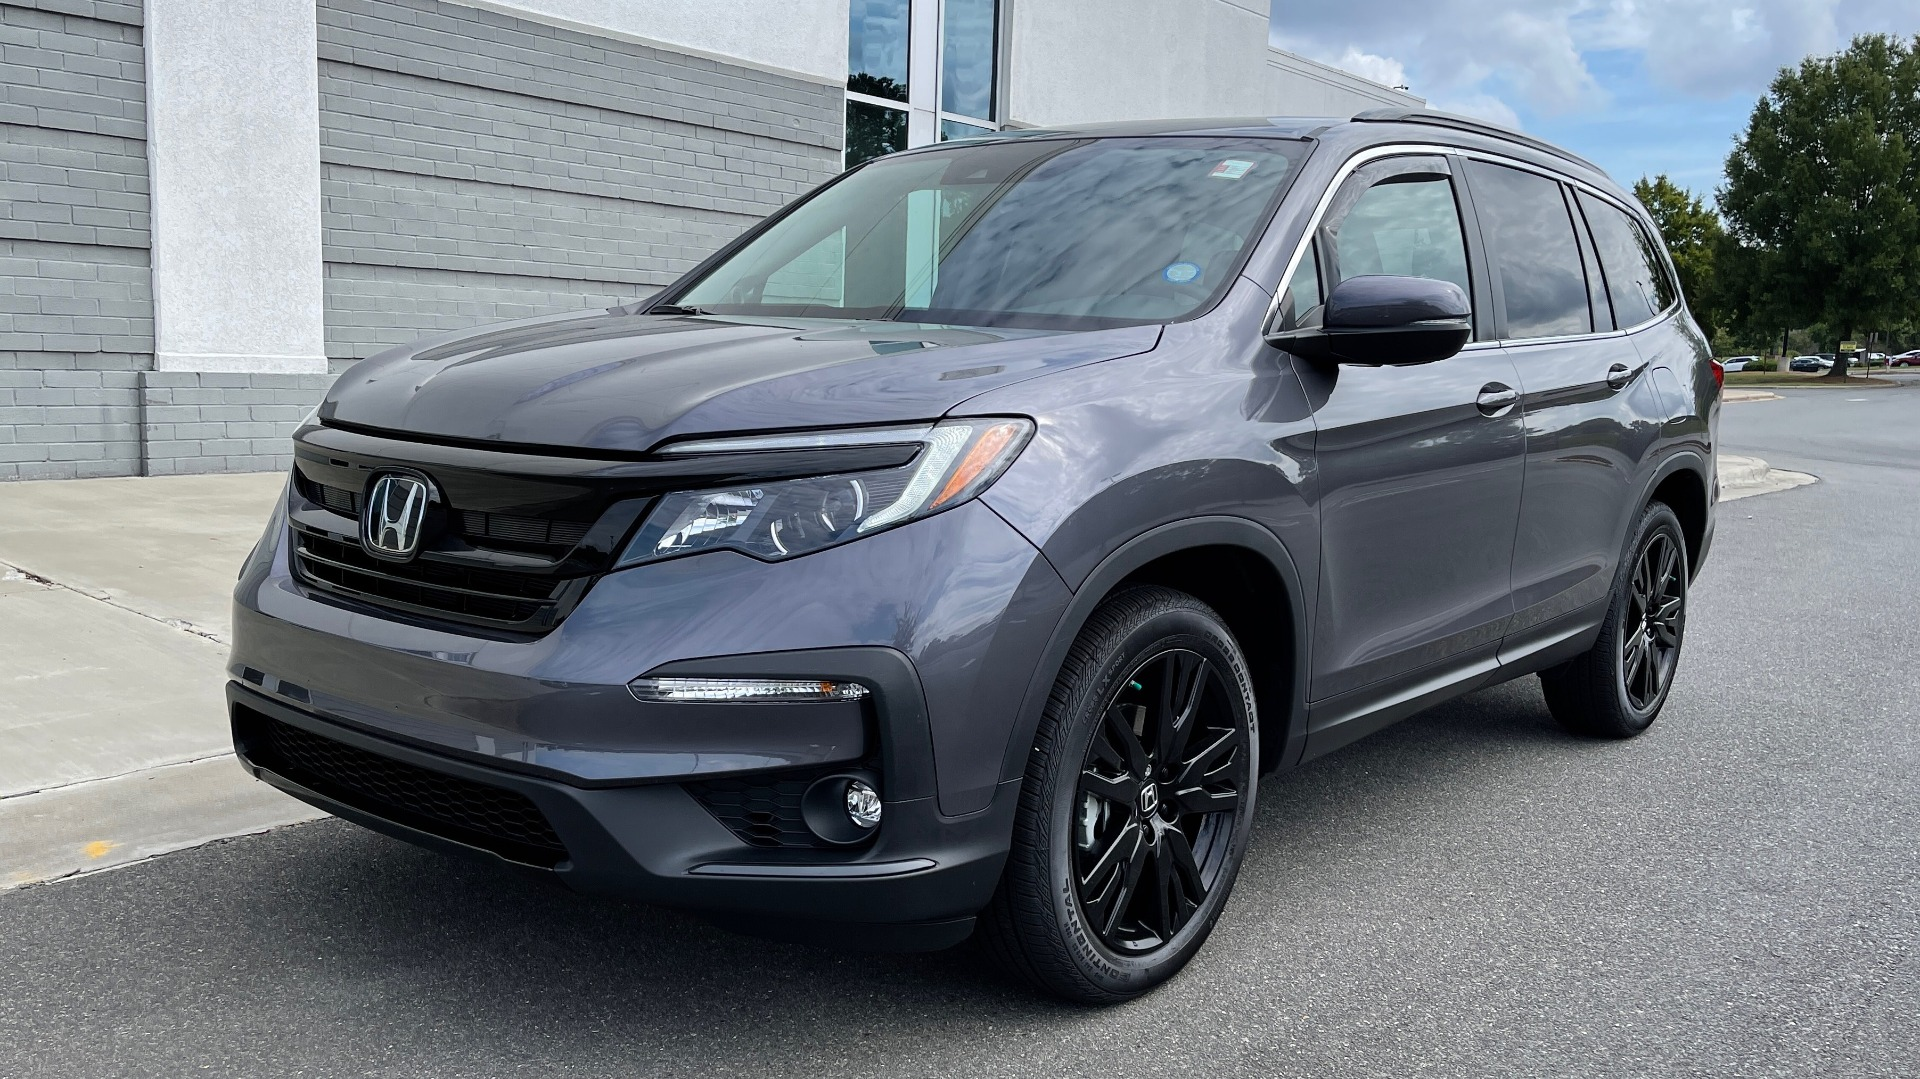 Used 2021 Honda PILOT SE / 3.5L V6 / 9-SPD AUTO / SUNROOF / 3-ROW / REARVIEW for sale $38,795 at Formula Imports in Charlotte NC 28227 1